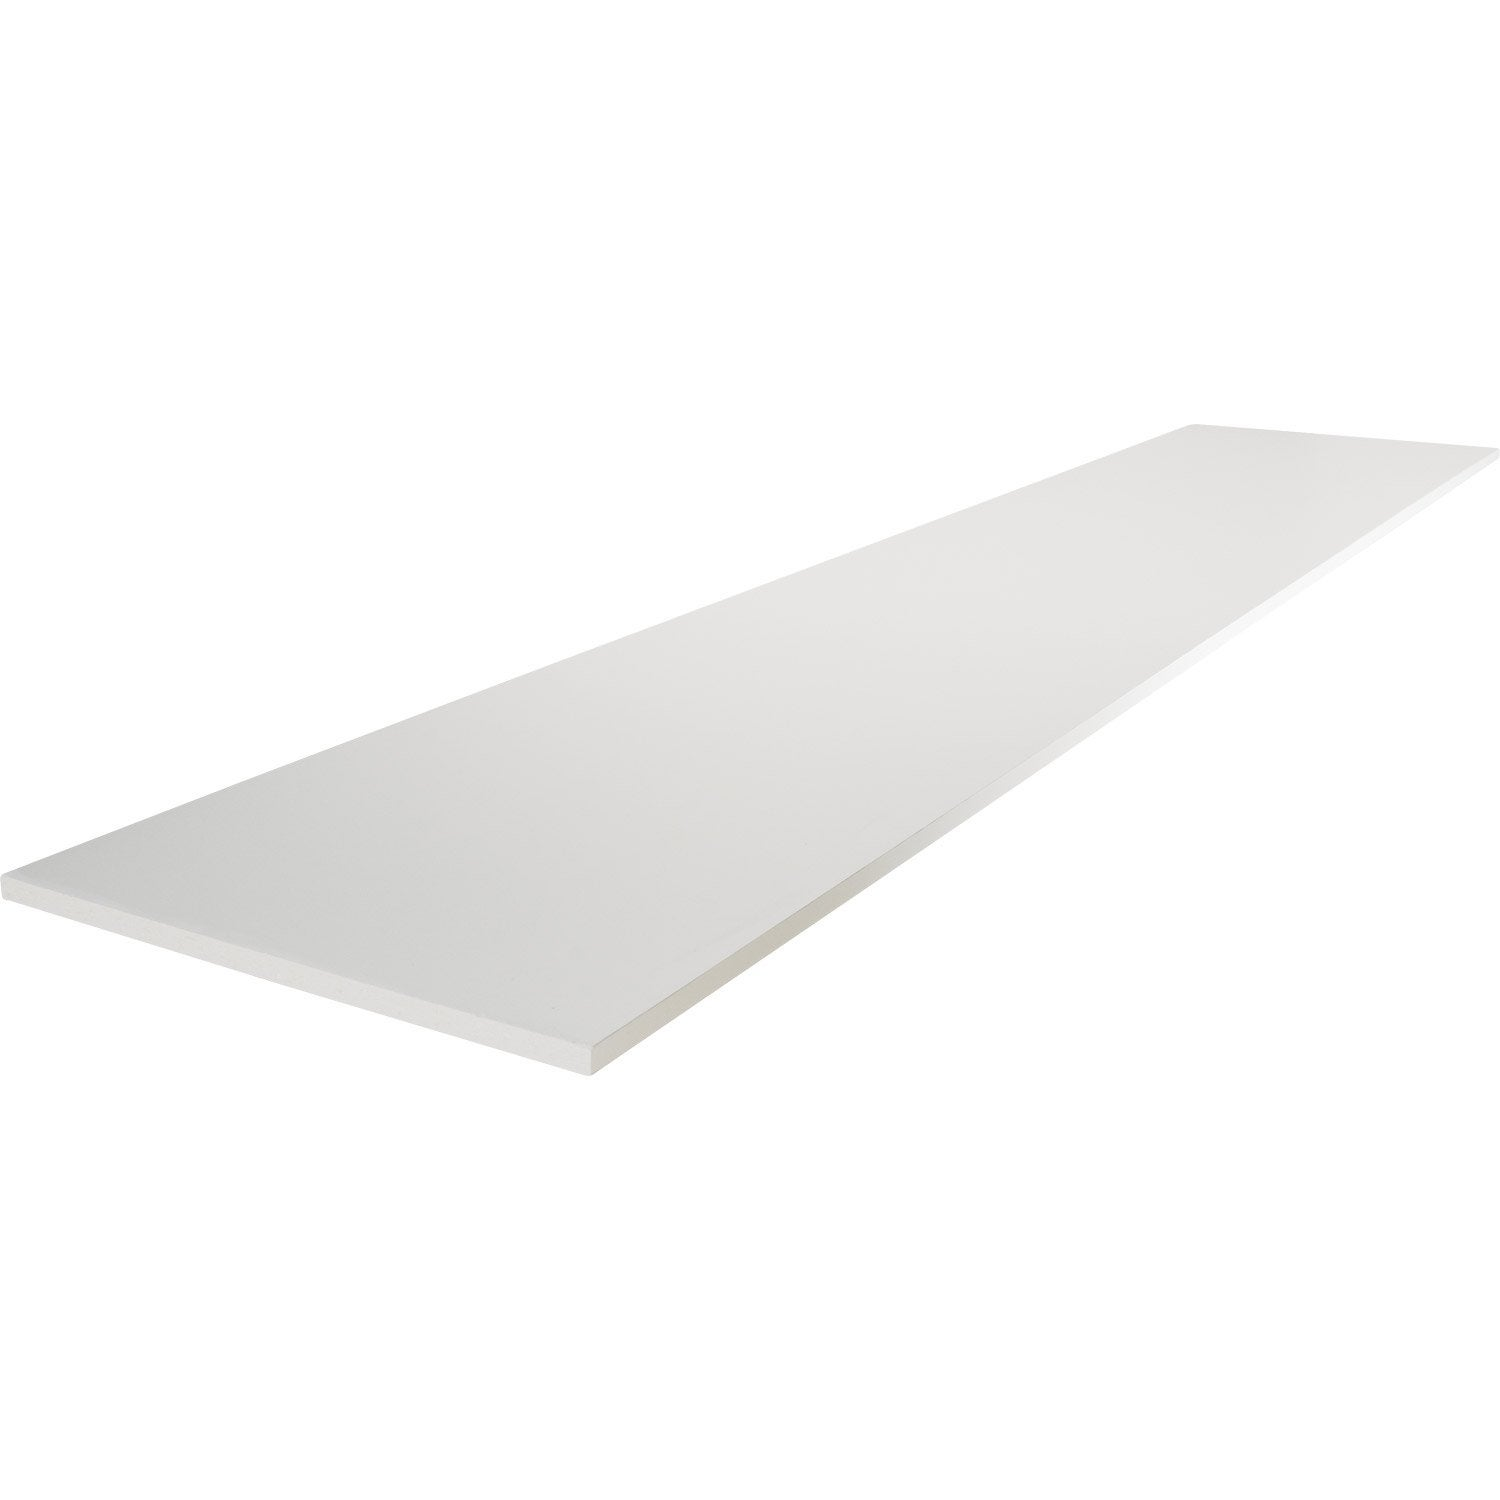 Tablette m lamin blanc x cm x mm - Tablettes murales leroy merlin ...